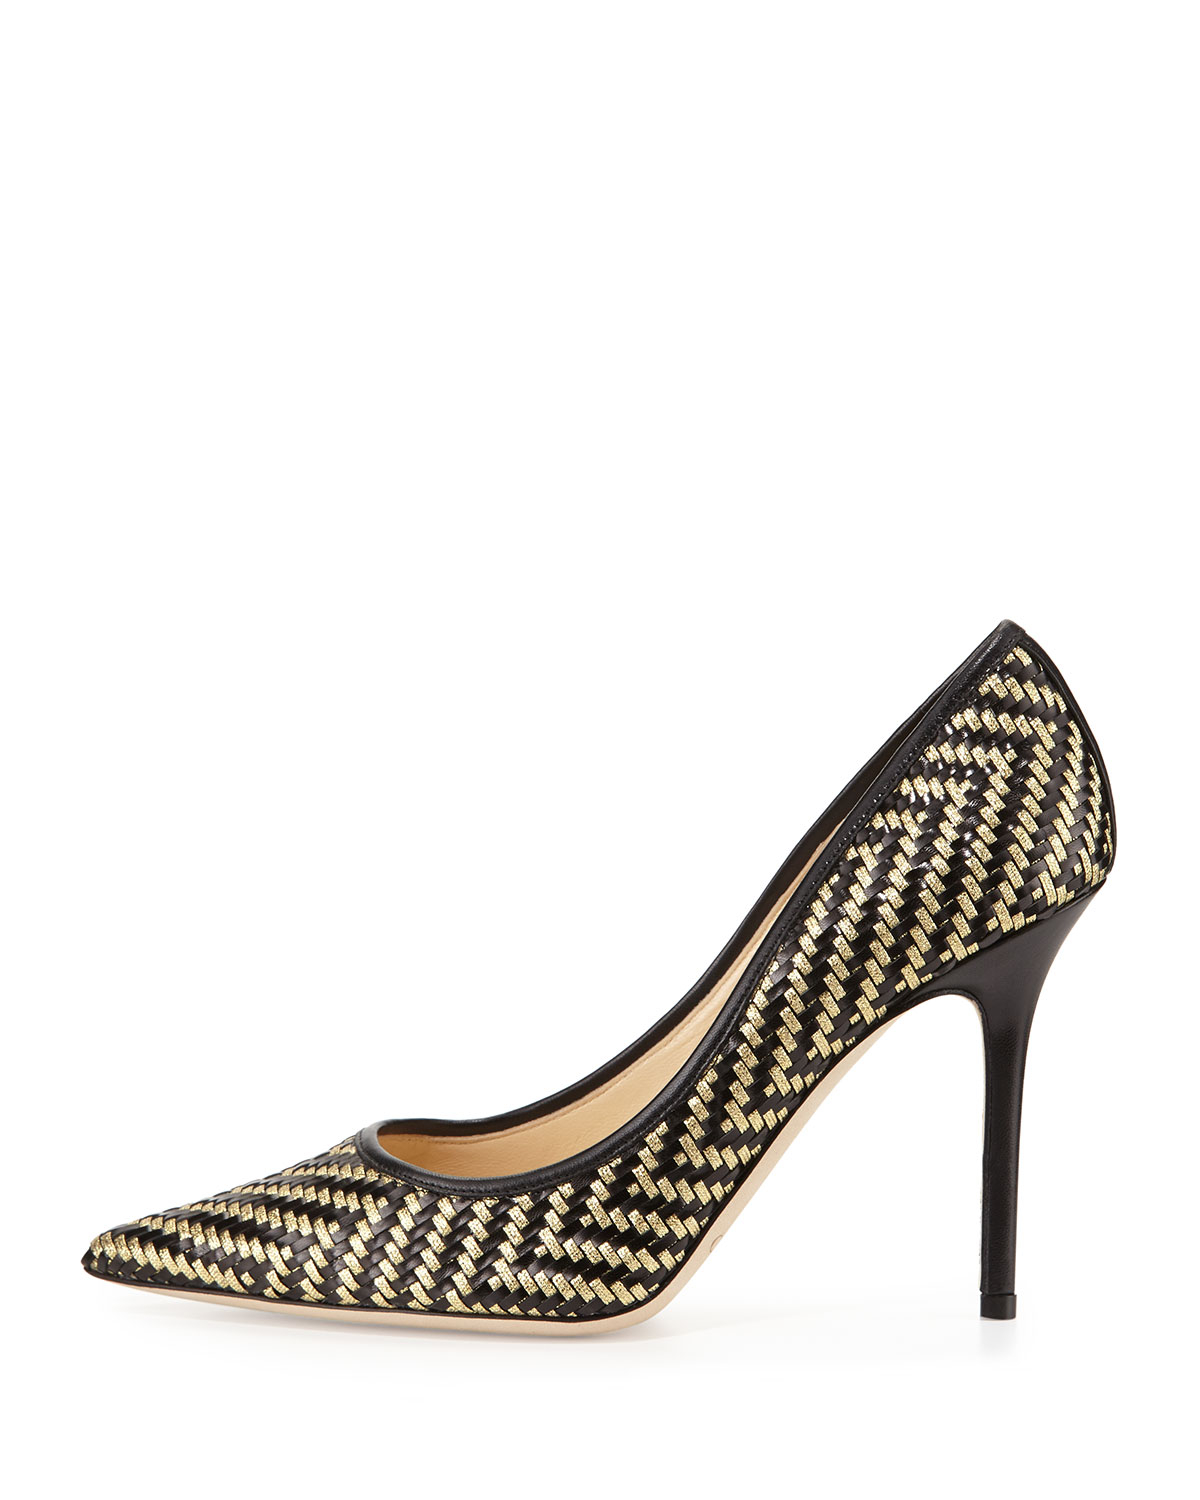 Jimmy Choo Woven Embellished Pumps